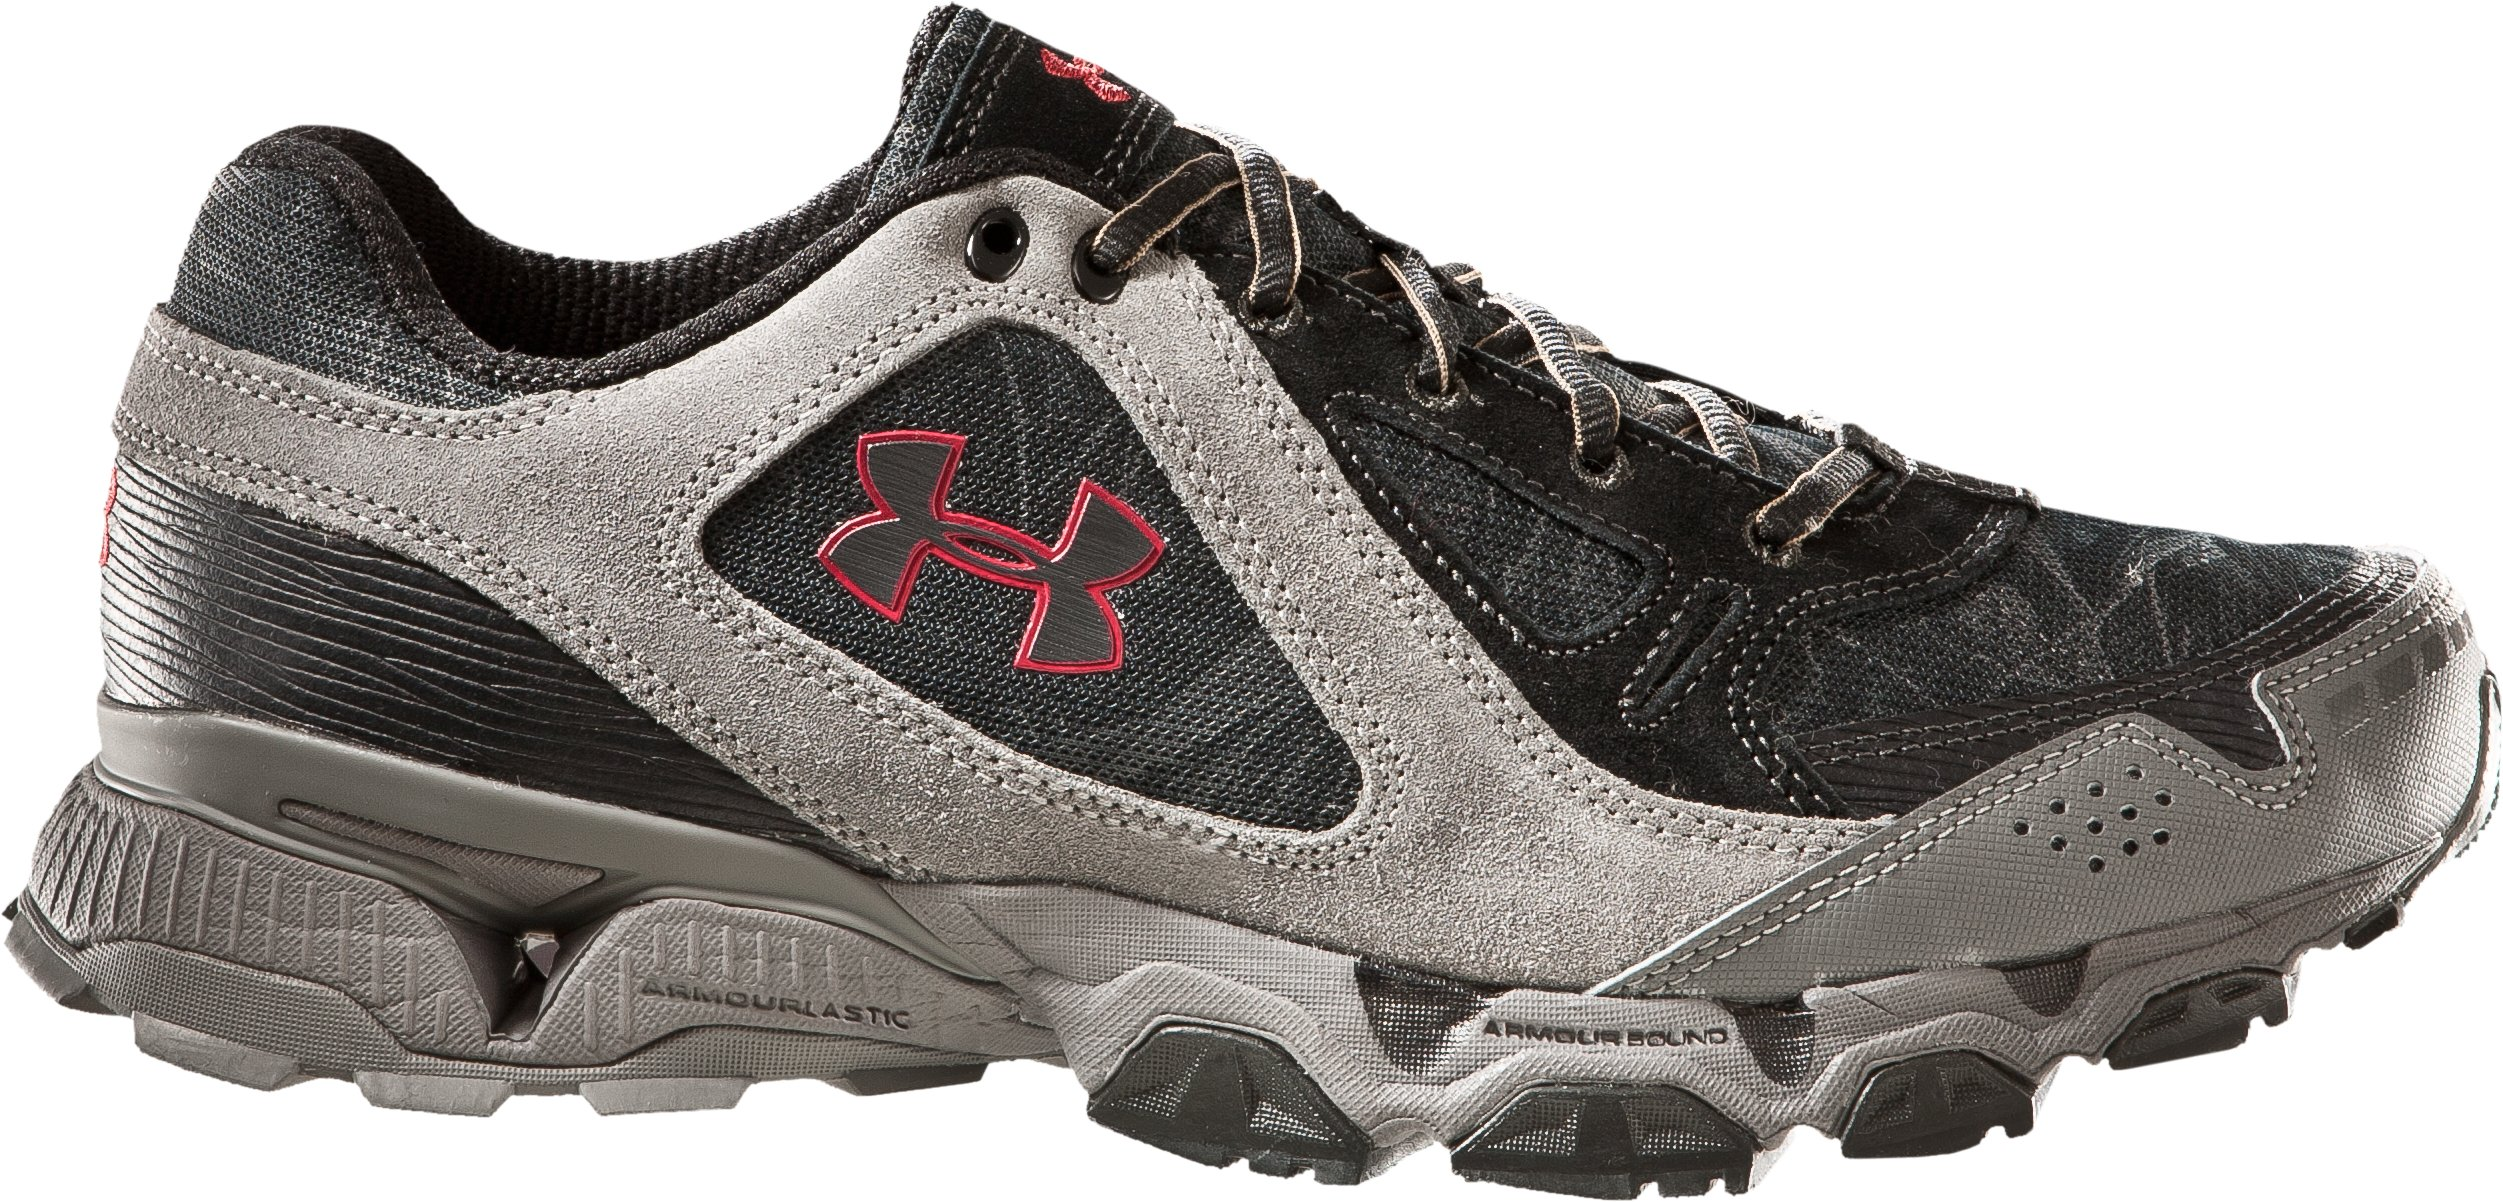 Men's Chetco II Trail Running Shoes, Storm, zoomed image